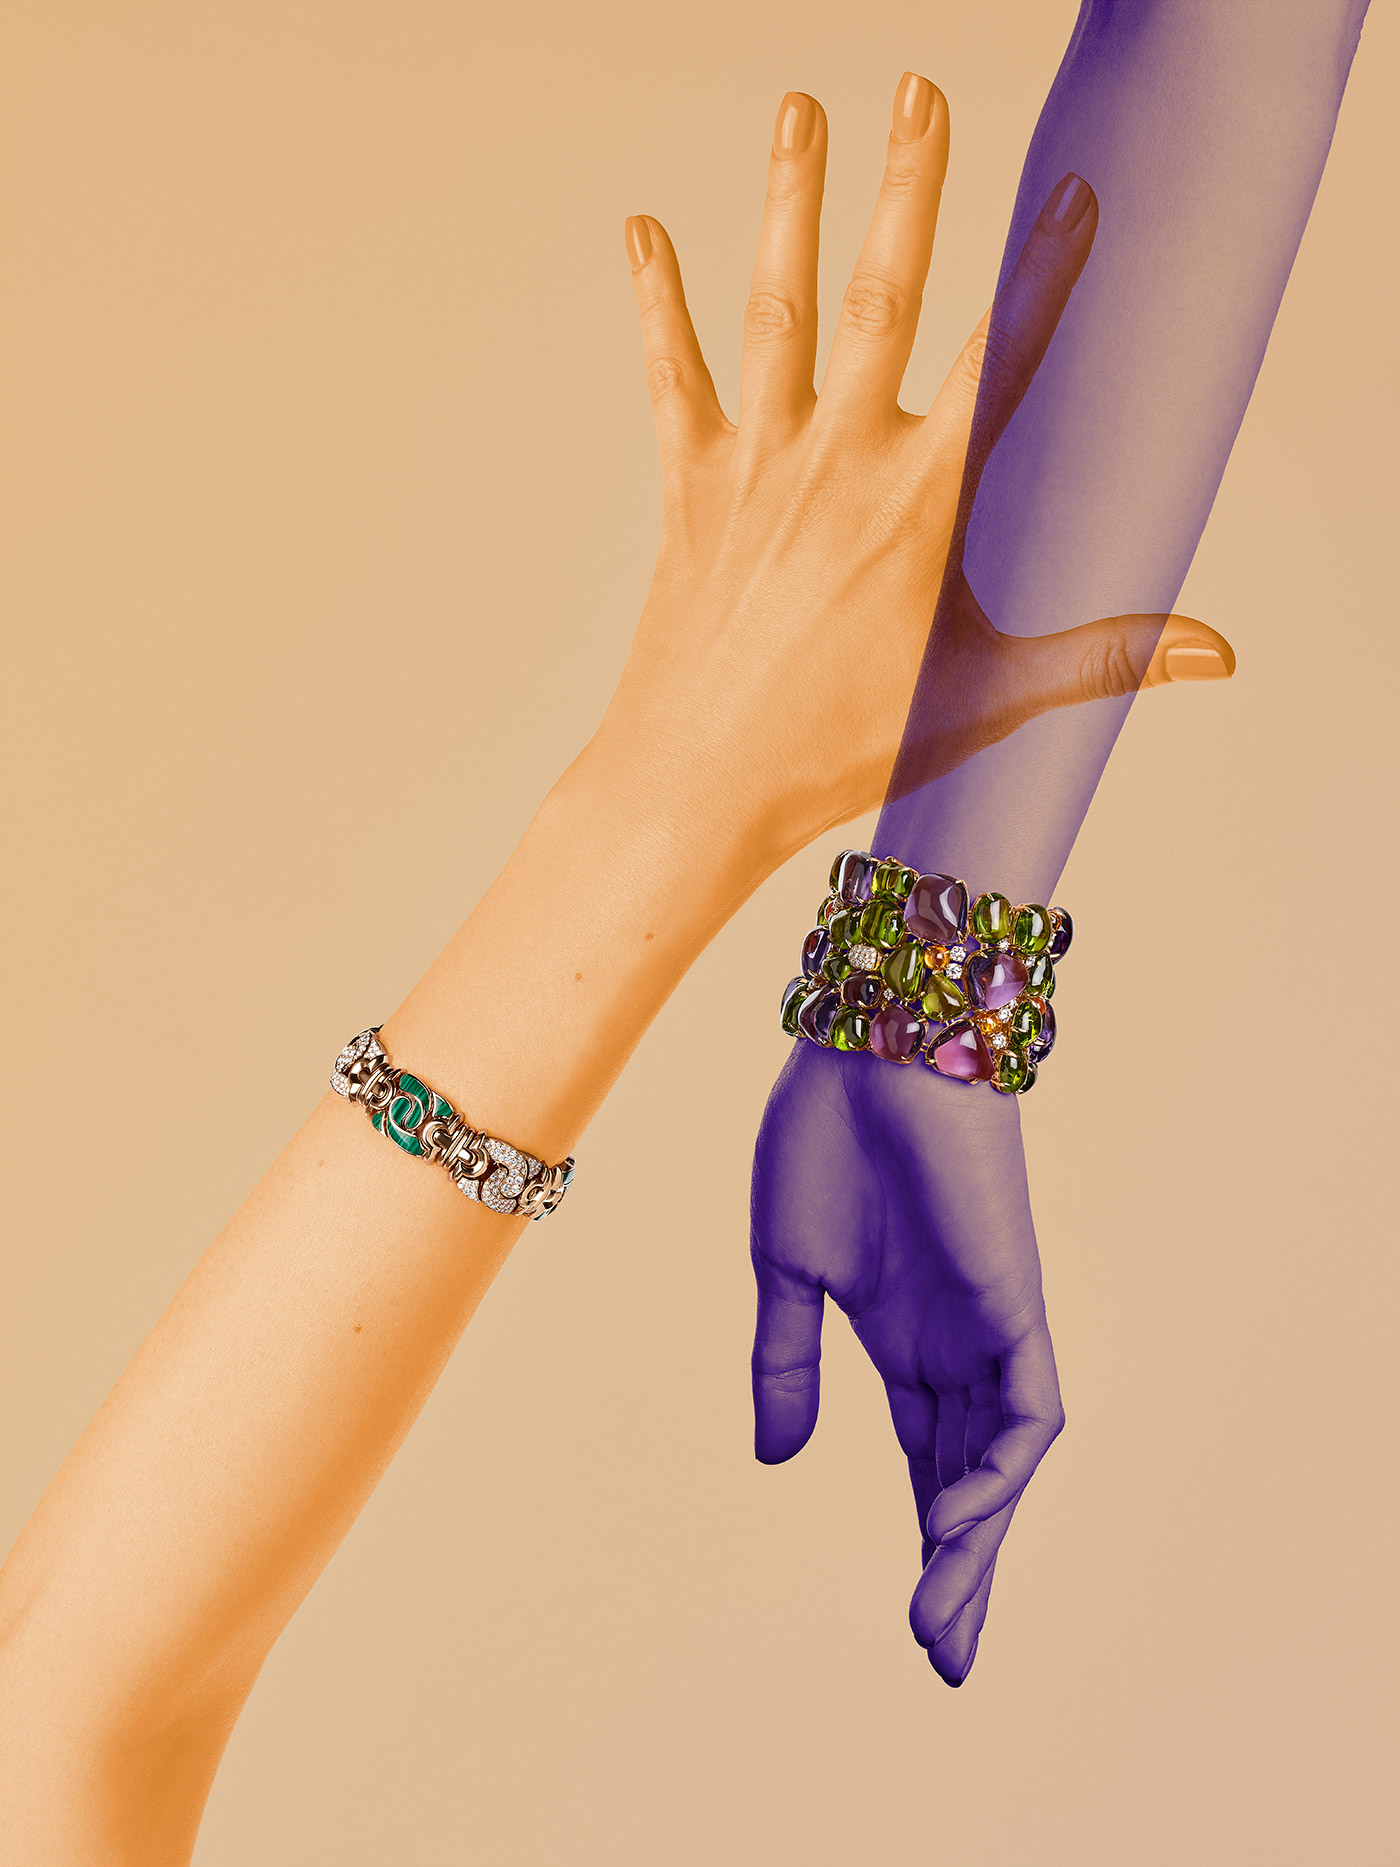 Bulgari bracelets in editorial by Katerina Perez and ReanArt